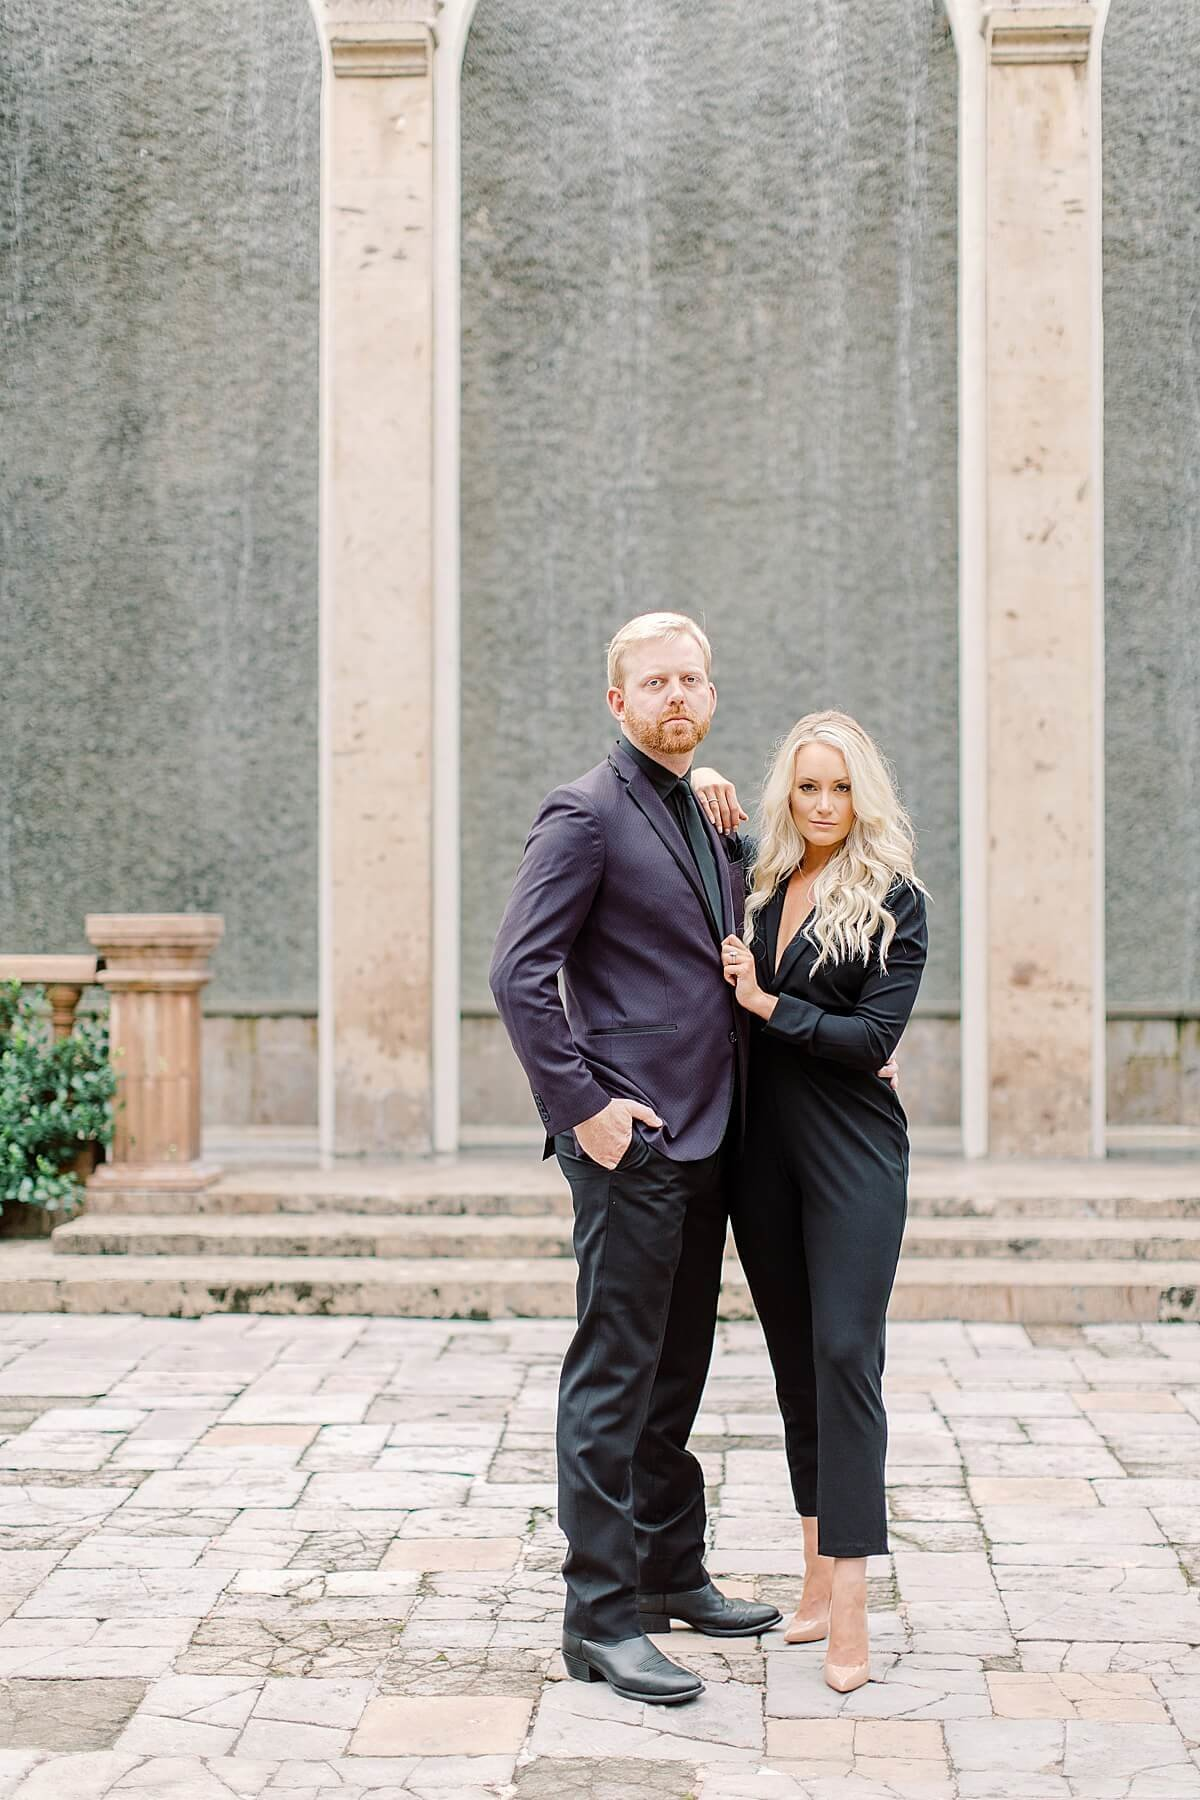 bell-tower-engagement-session-alicia-yarrish-photography-9